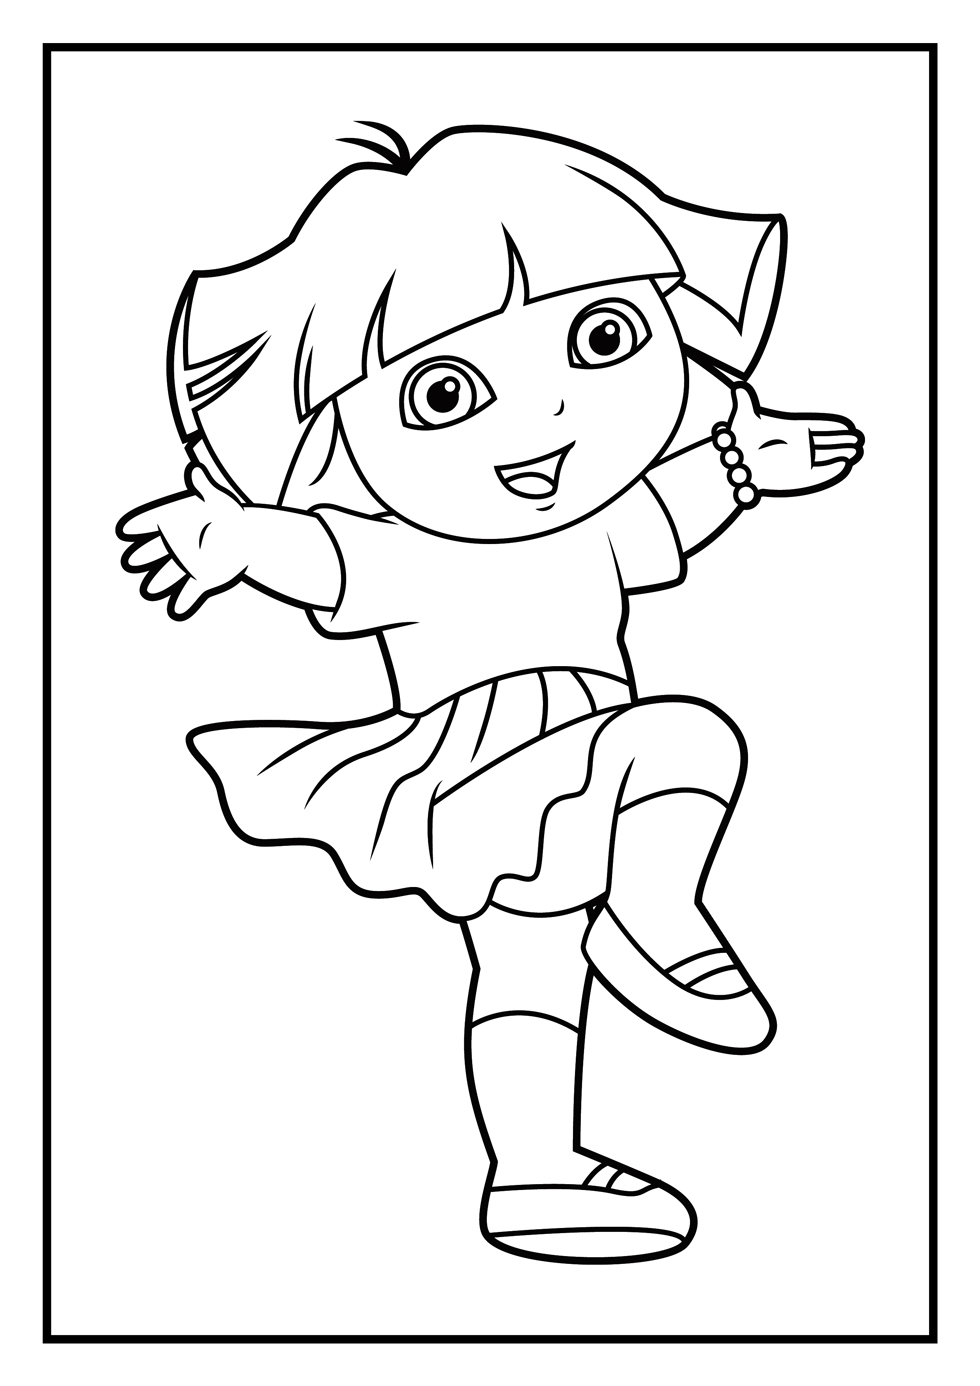 dora pictures to color and print get this printable dora the explorer coloring pages online to dora color and pictures print